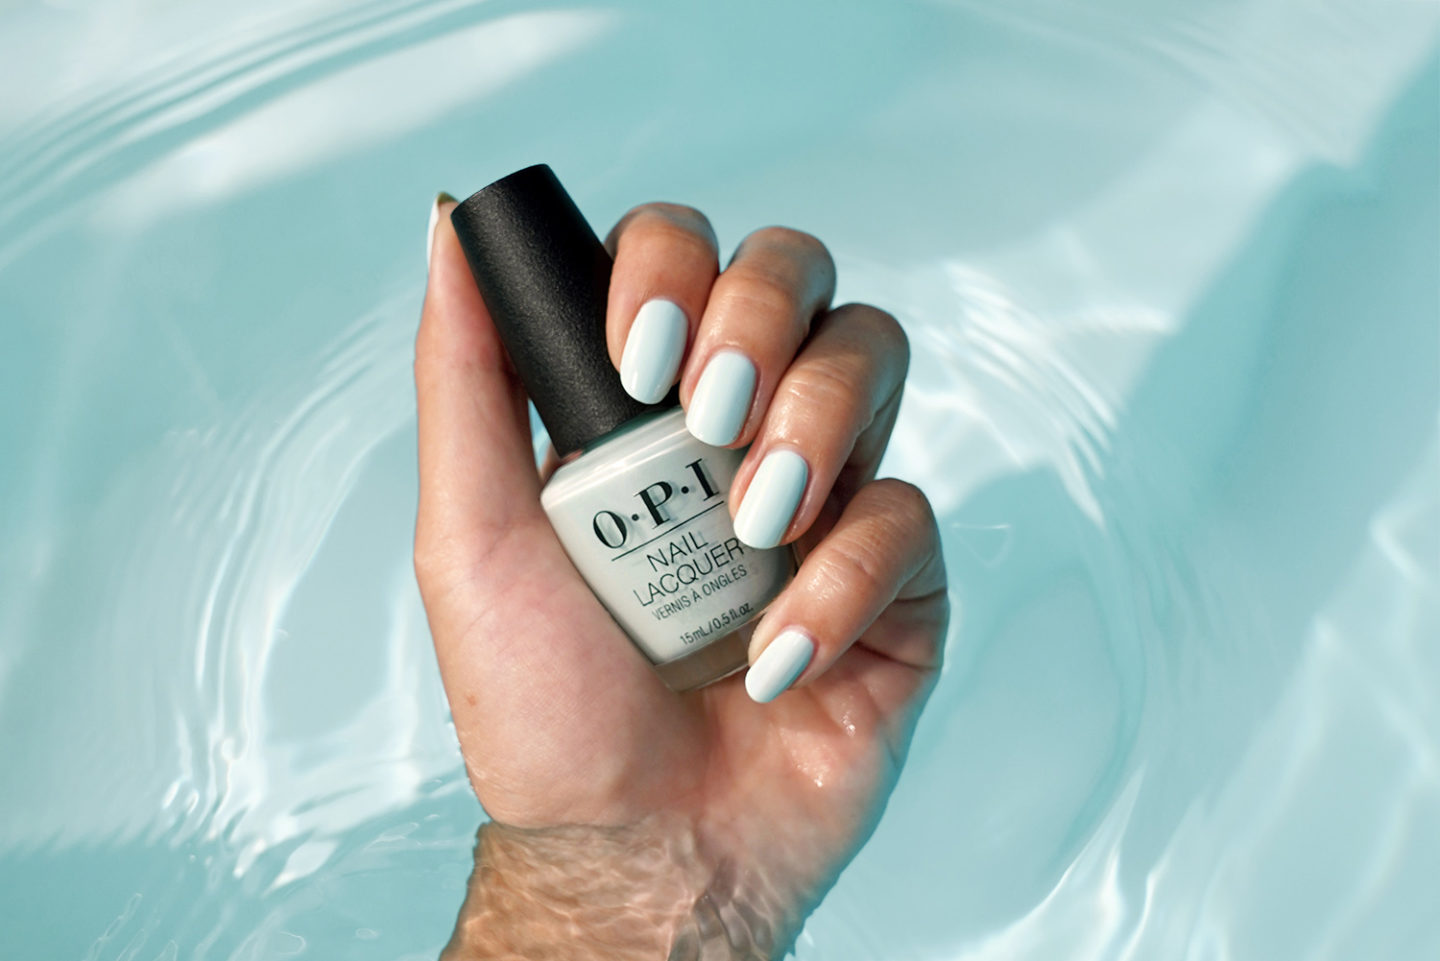 OPI Mexico City Move-Mint swatch